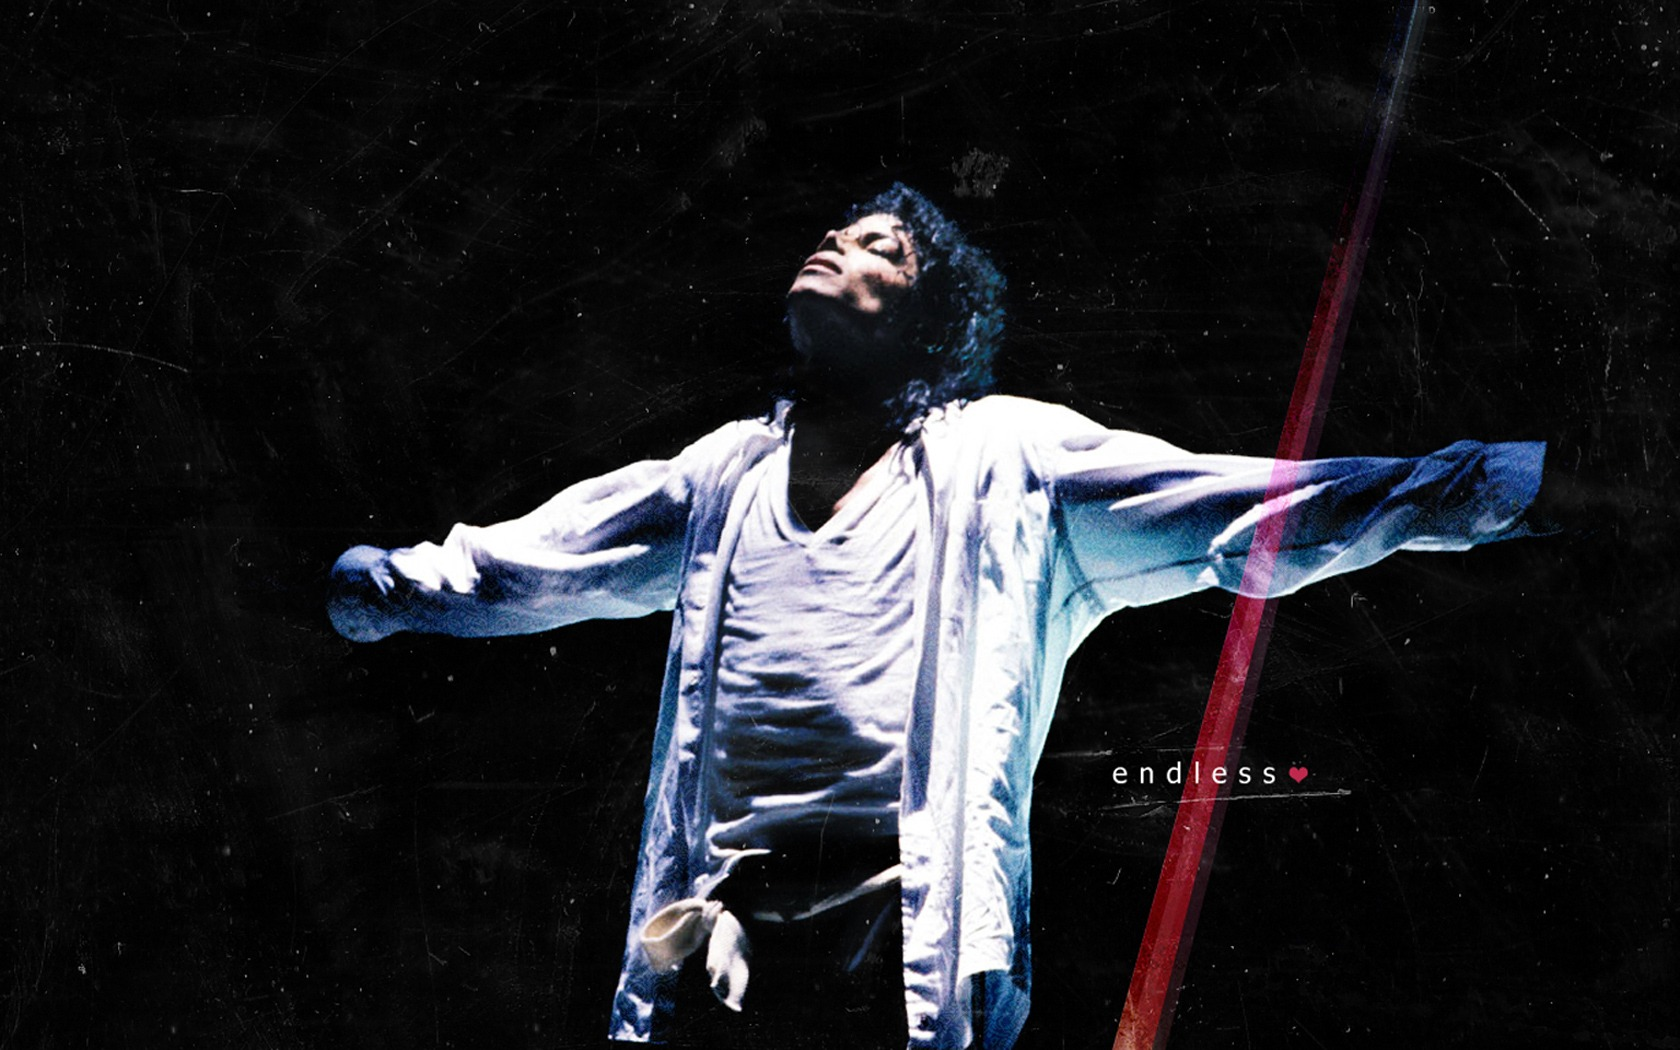 Michael Jackson Endless Love Wallpaper Male Celebrities Wallpapers